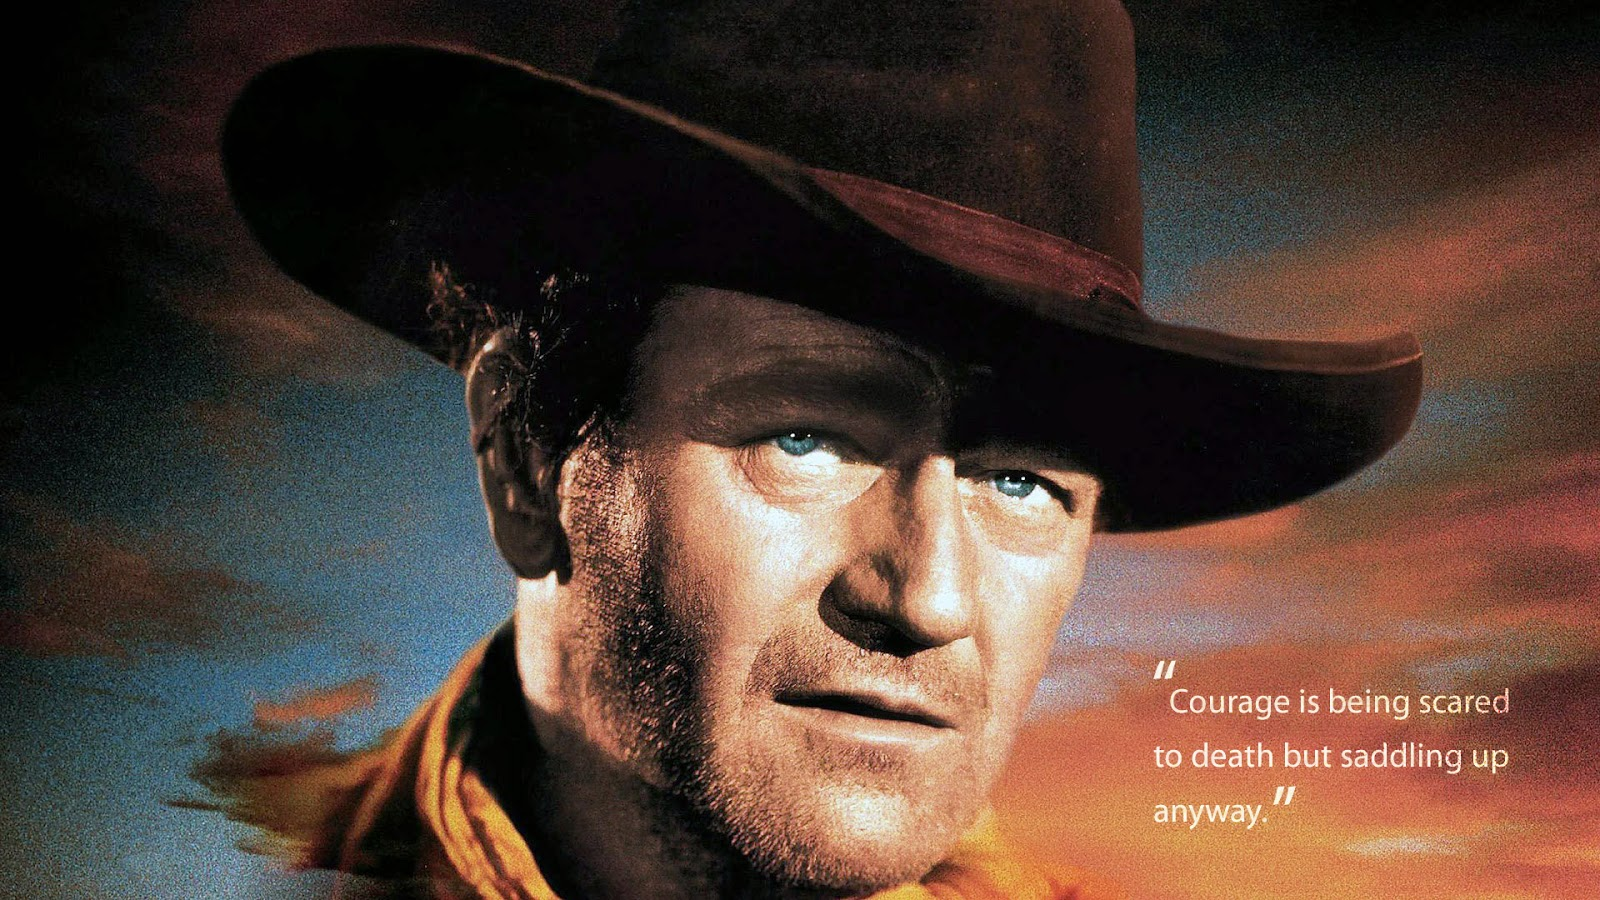 https://movies.yahoo.com/blogs/movie-news/book-explores-secrets-behind-john-wayne-many-names-212200539.html